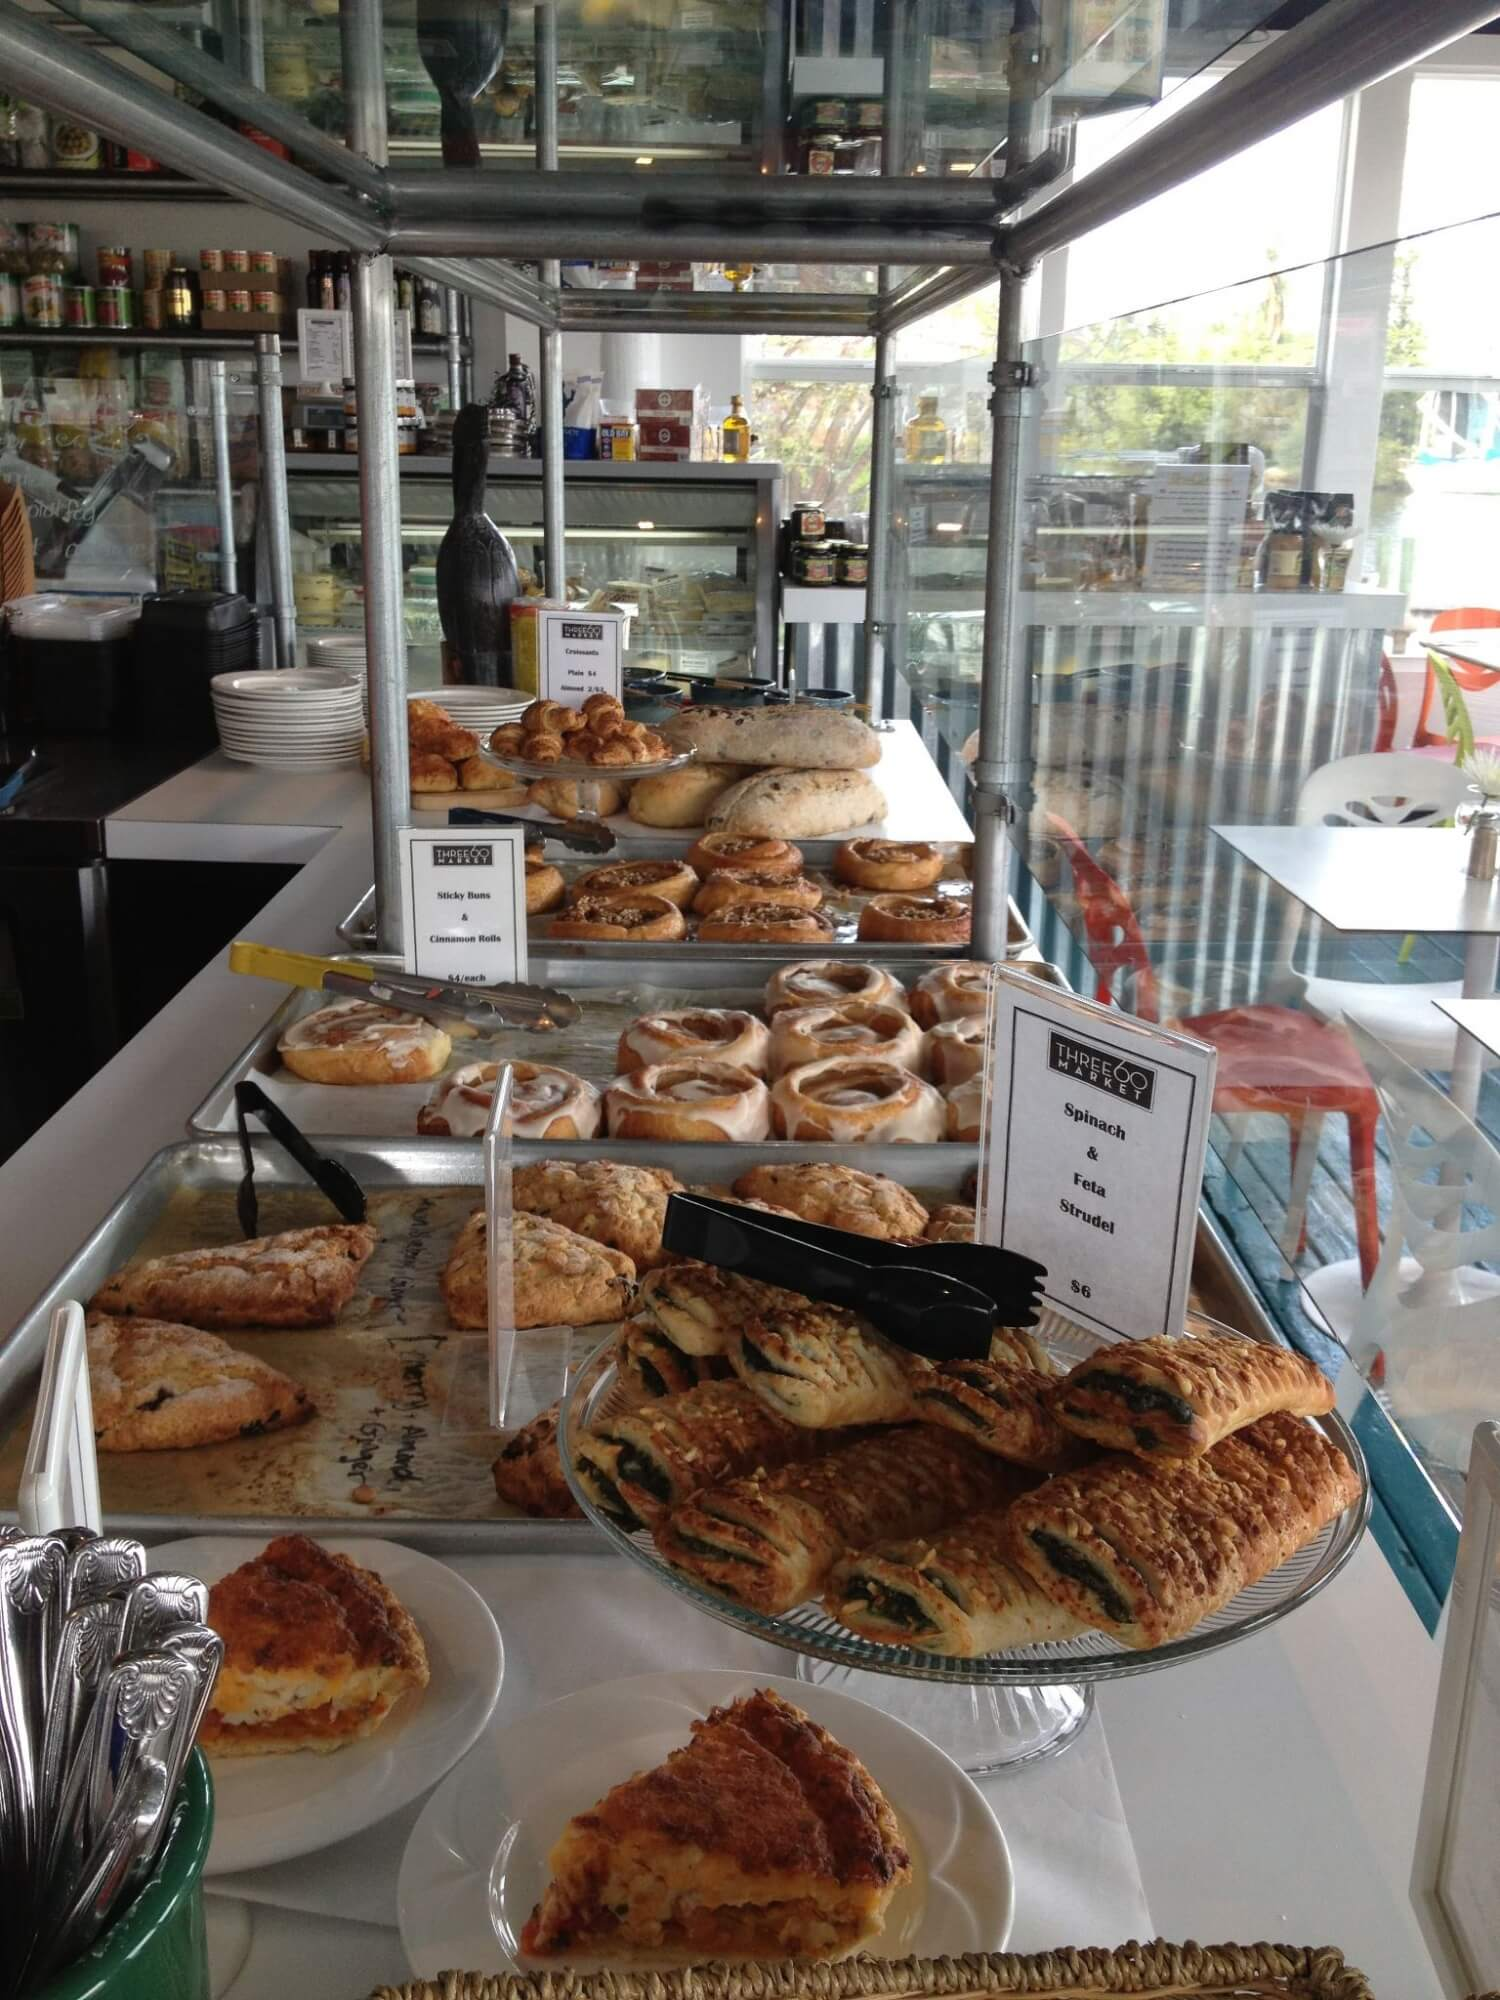 Three60 Market pastry, quiche, baked goods Naples, Florida